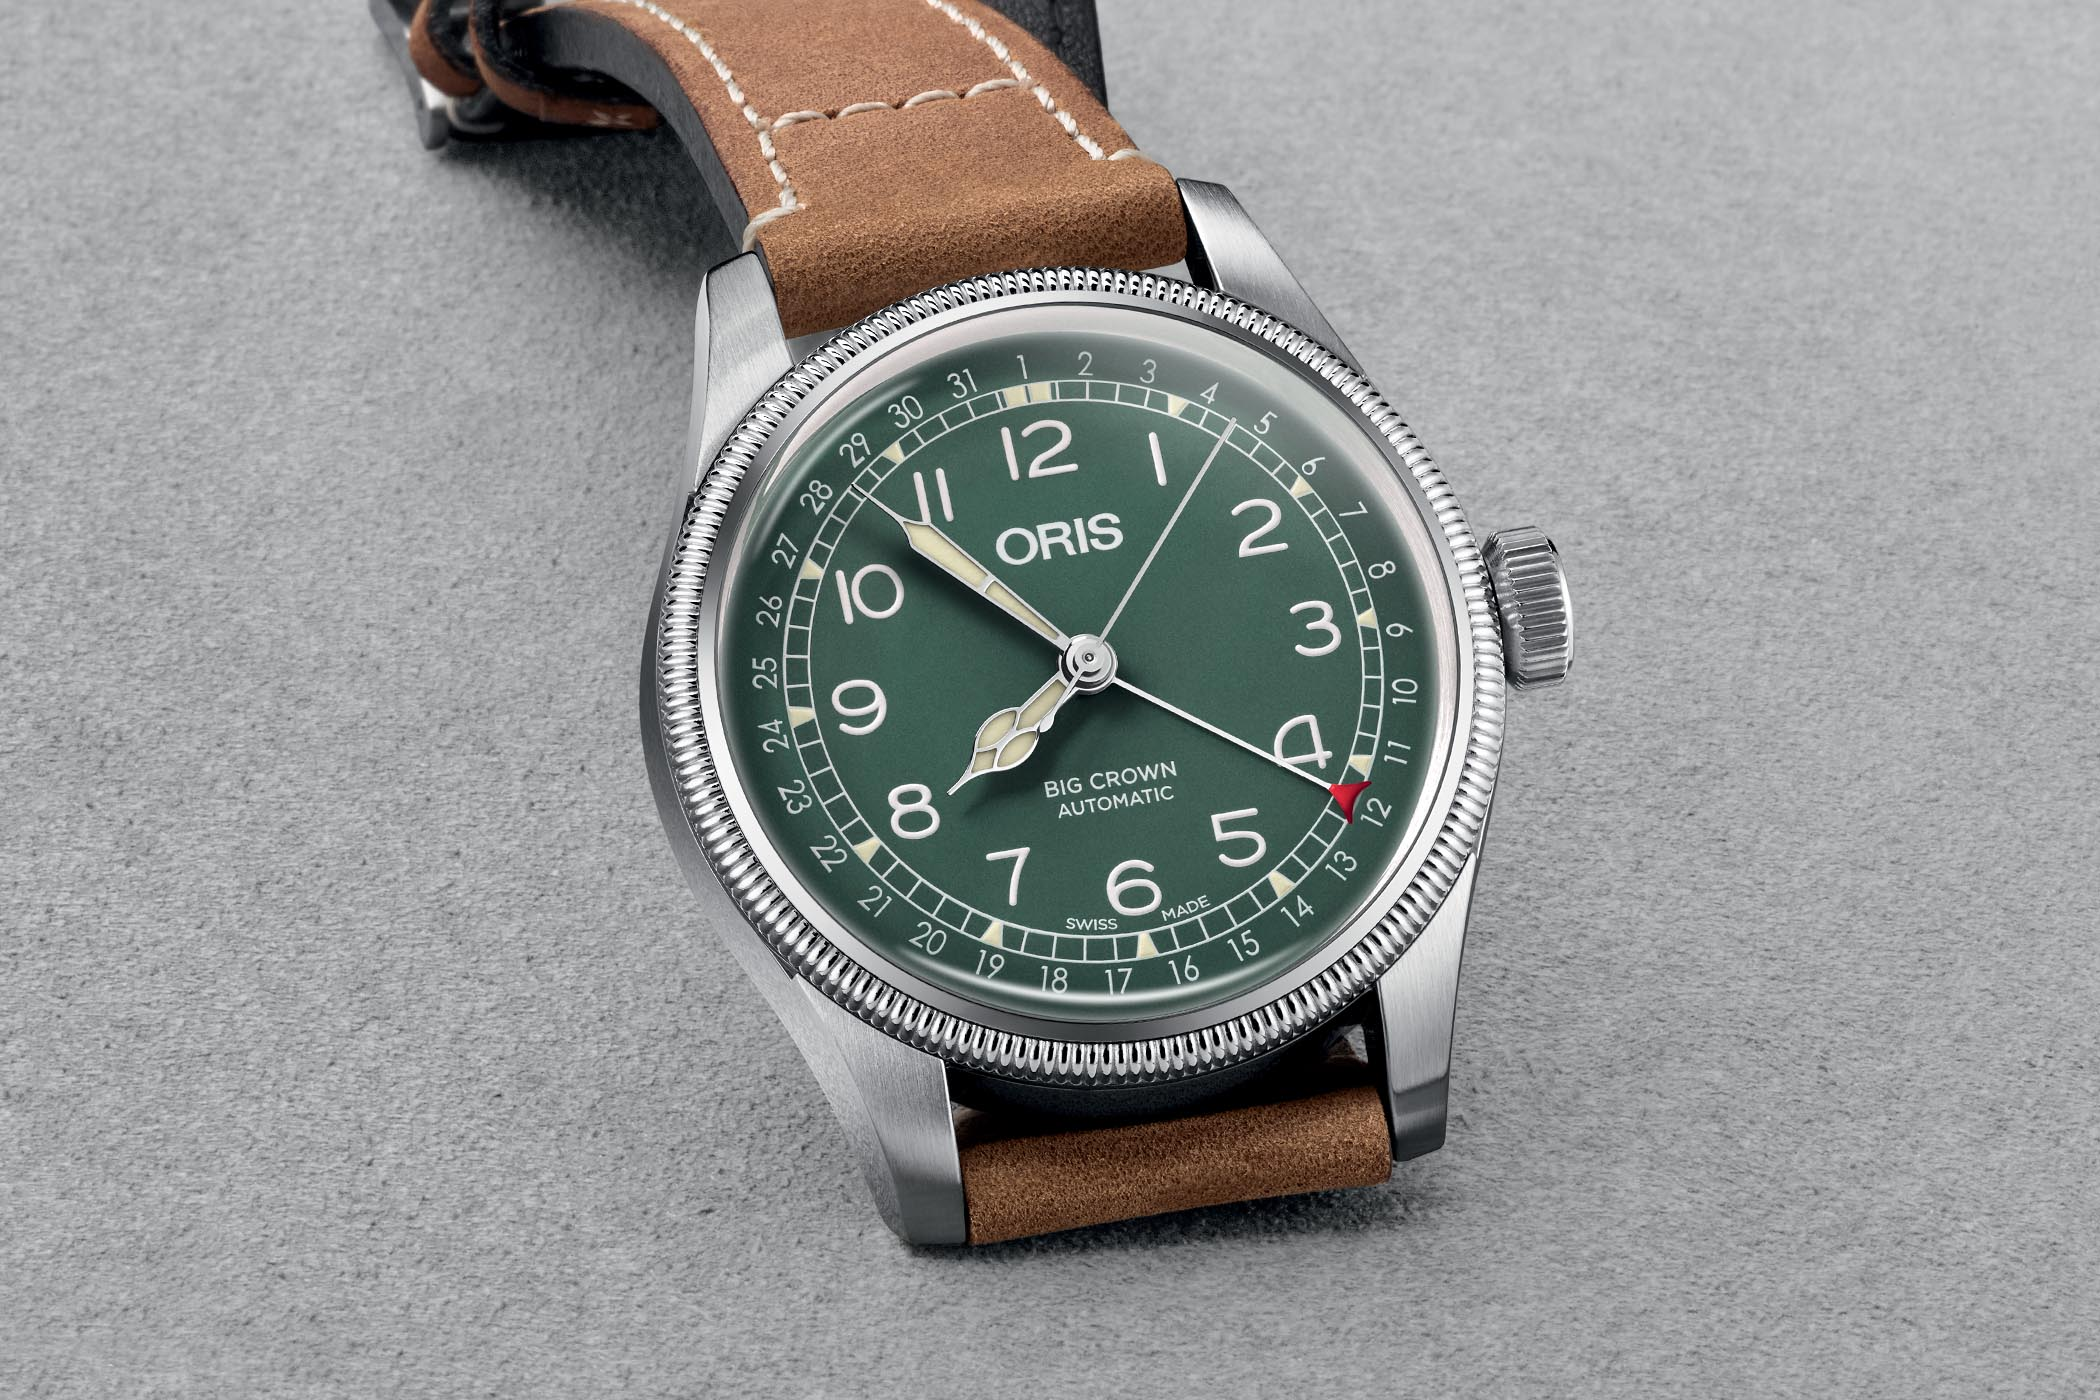 af83585a9d2 Introducing - Oris Big Crown Pointer Date D.26 286 HB-RAG Limited ...